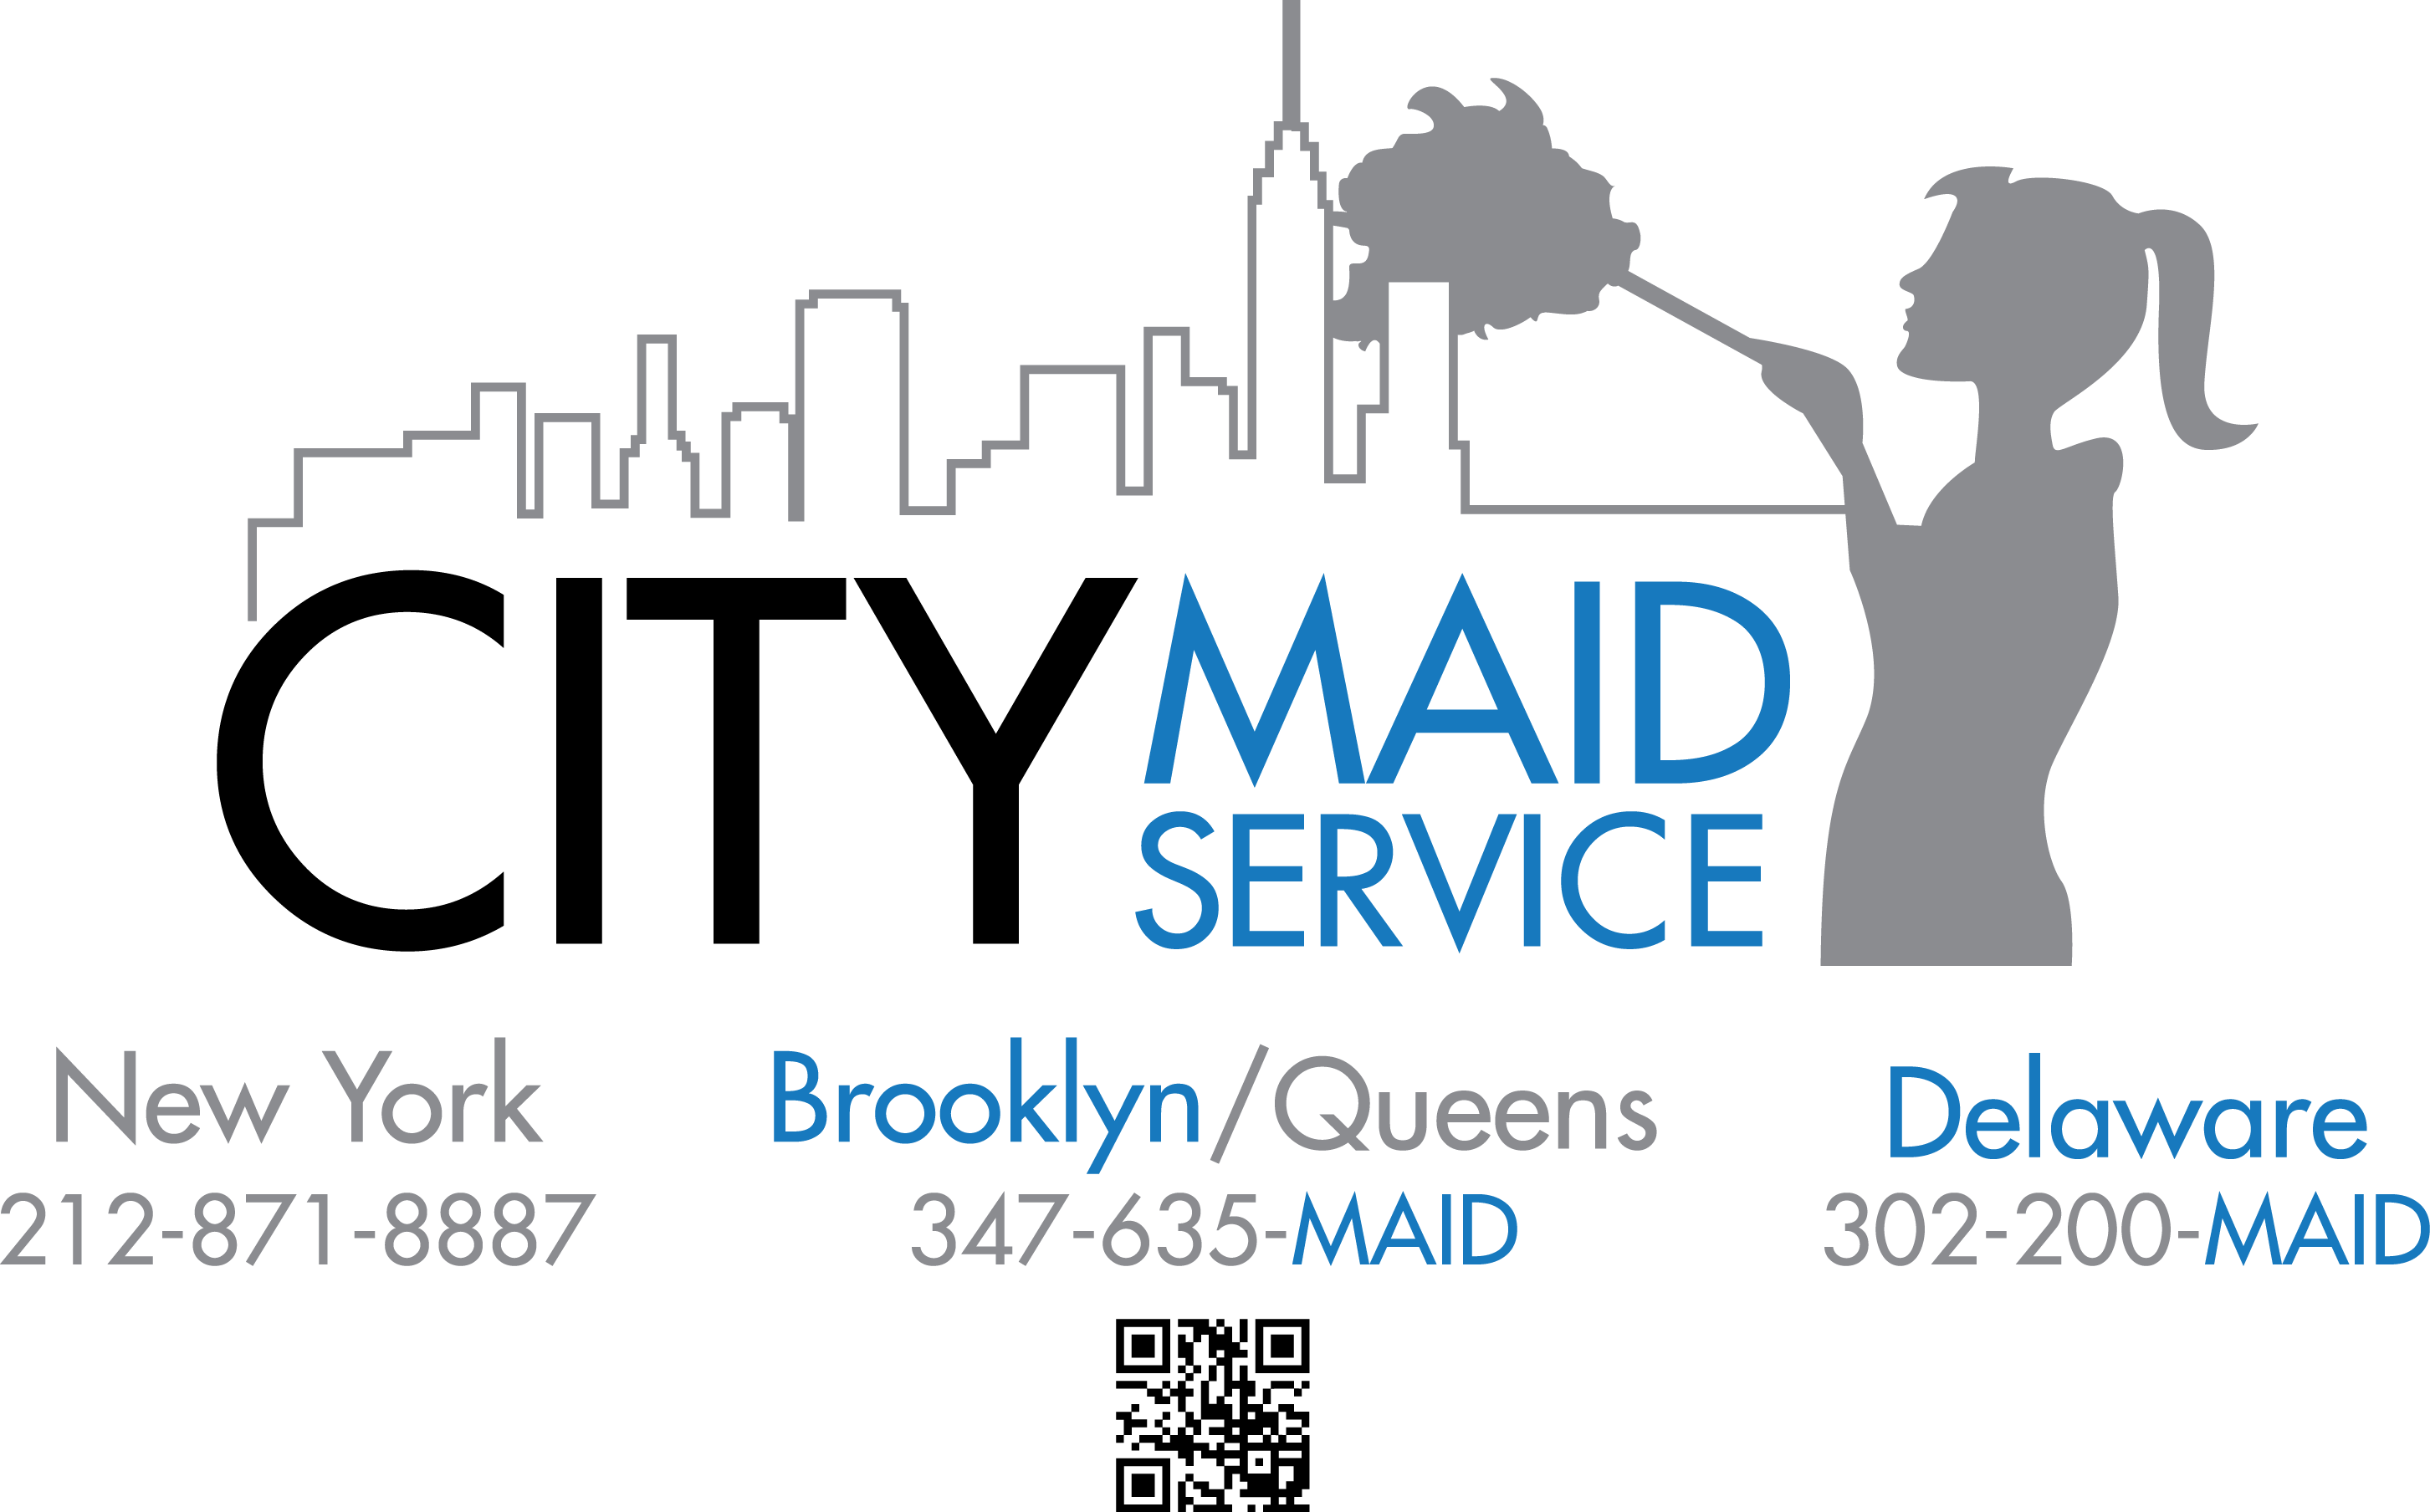 New York Local Business - City Maid Service - Local Business